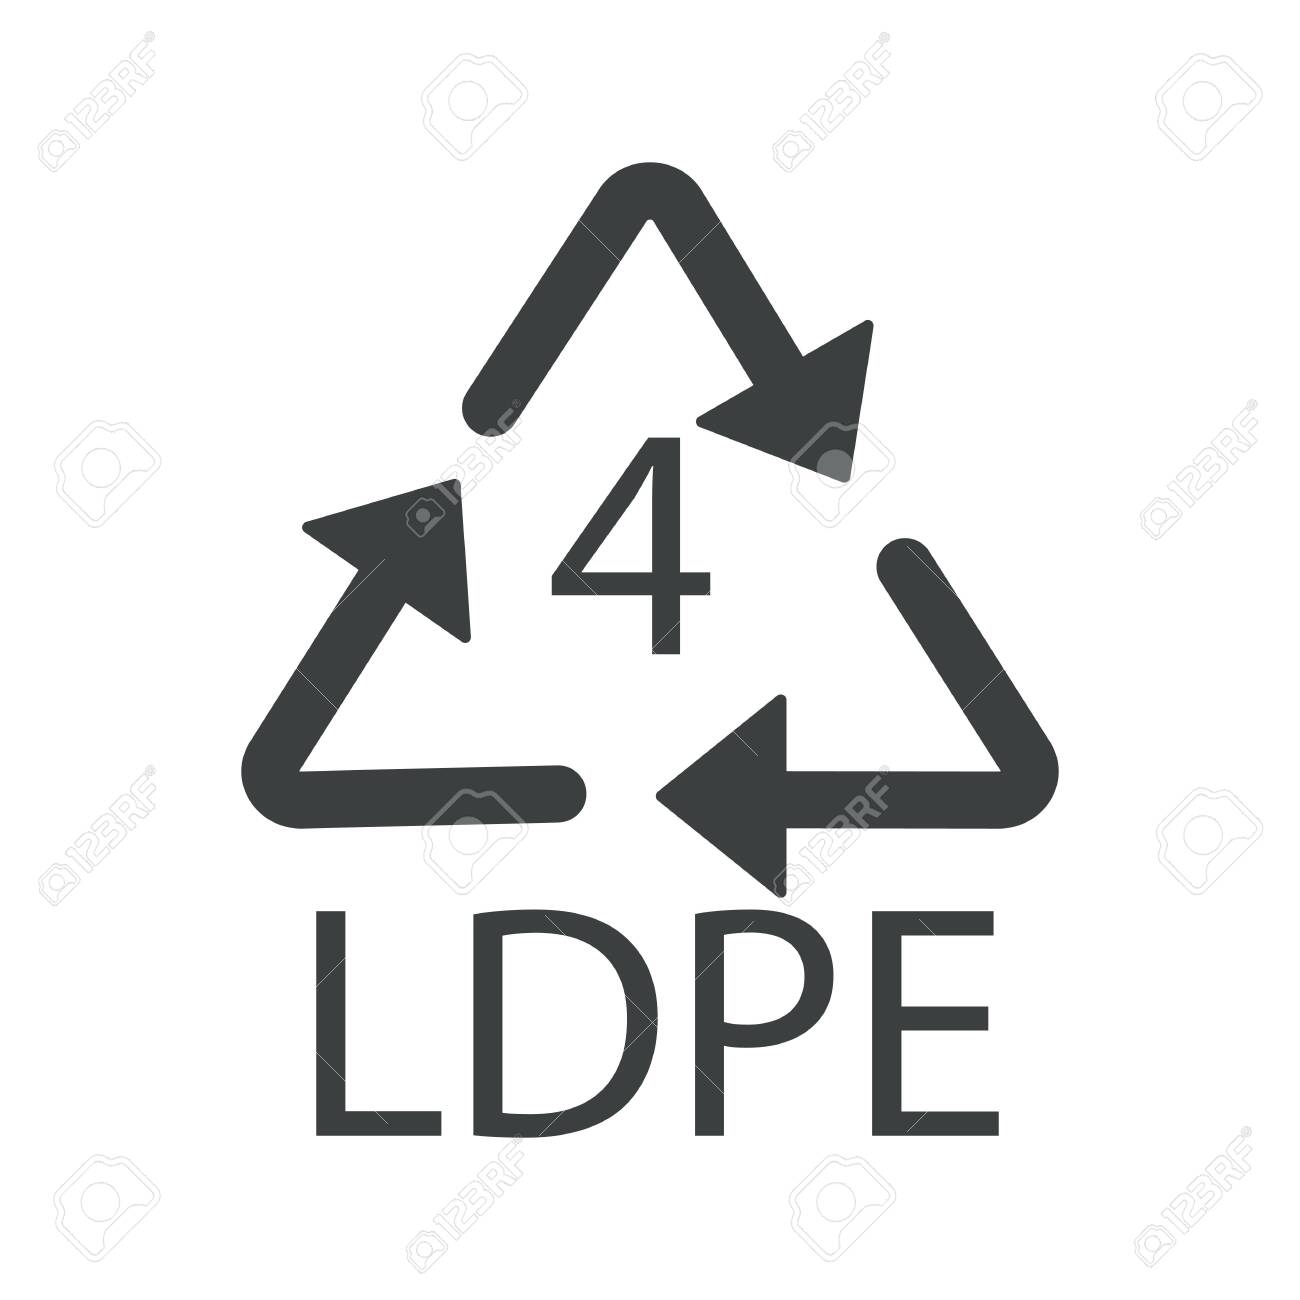 Recycle arrows triangle, plastic recycling symbol, LDPE 4 - 130366665